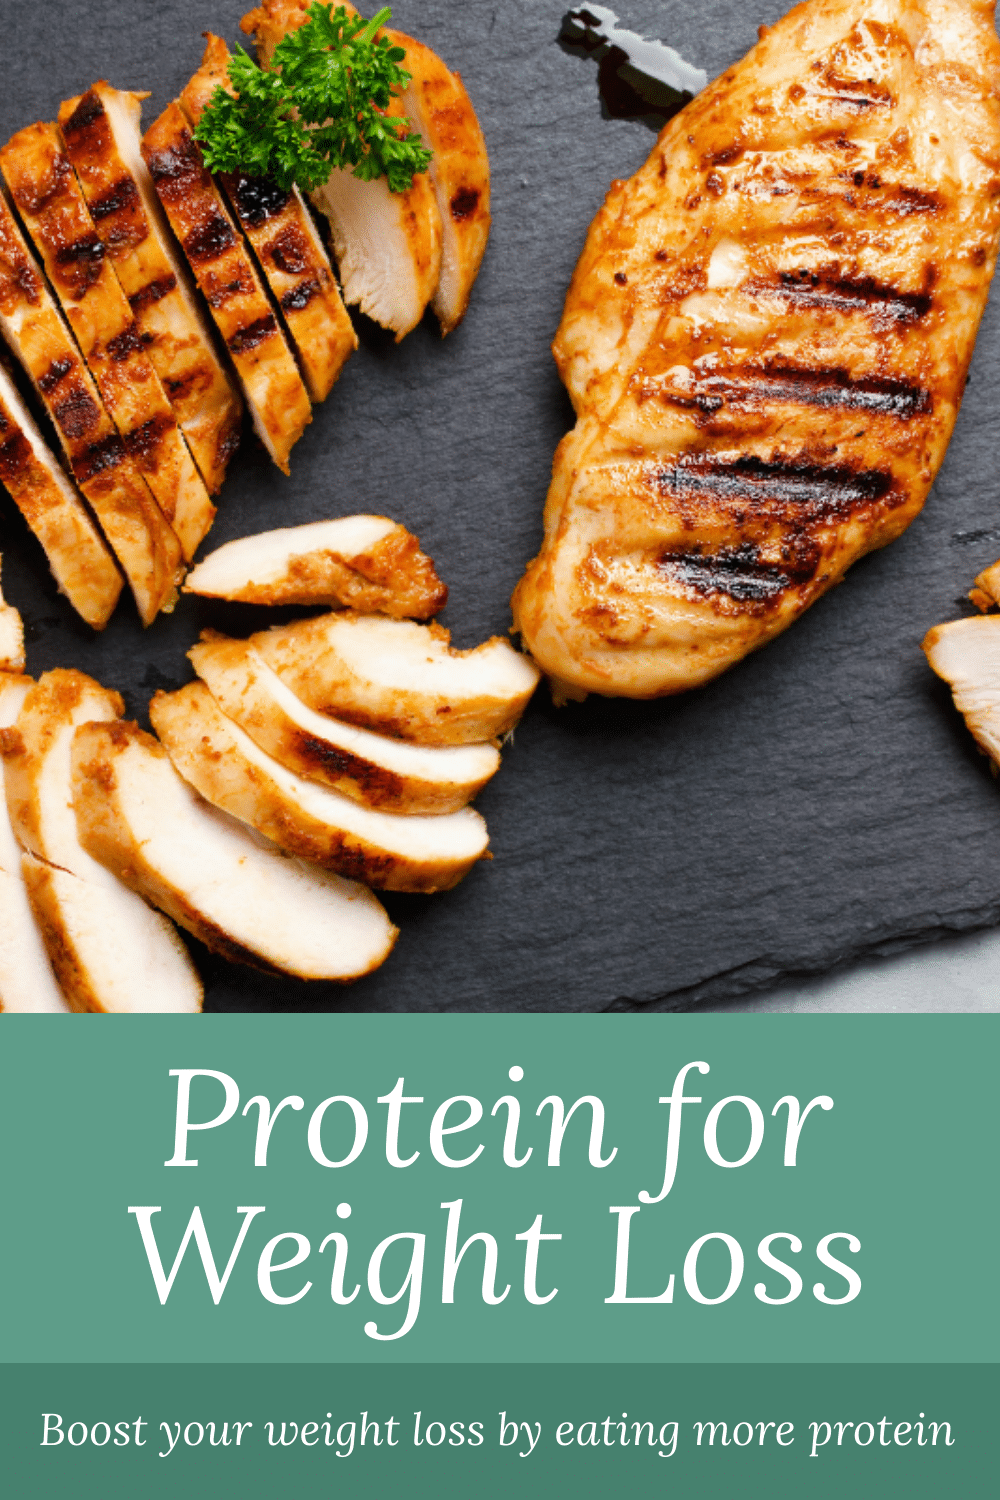 Top 5 Benefits of Protein for Weight Loss & How Much Protein to Lose Weight